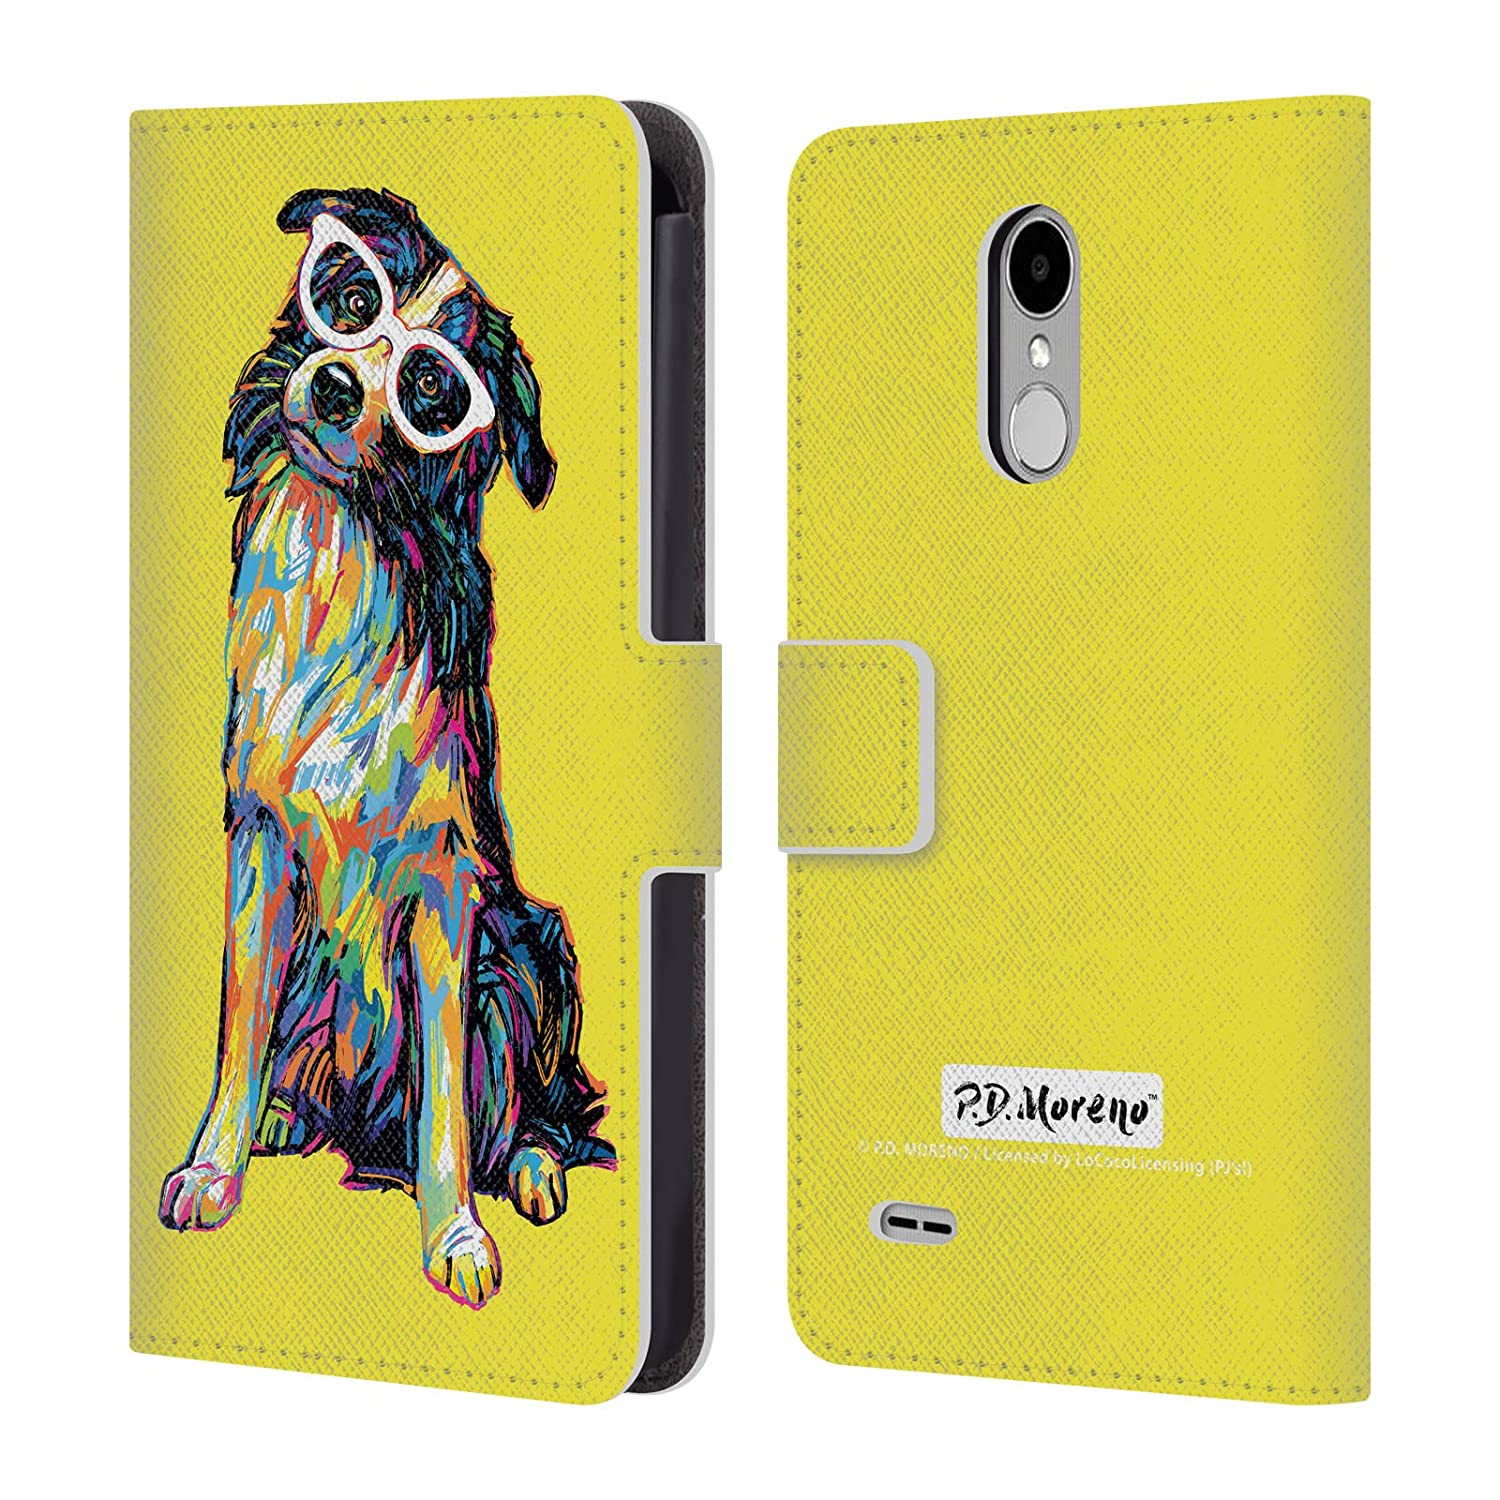 Official P.D. Moreno Border Collie Dogs Leather Book Wallet Case Cover Compatible for LG Stylus 3 / K10 Pro